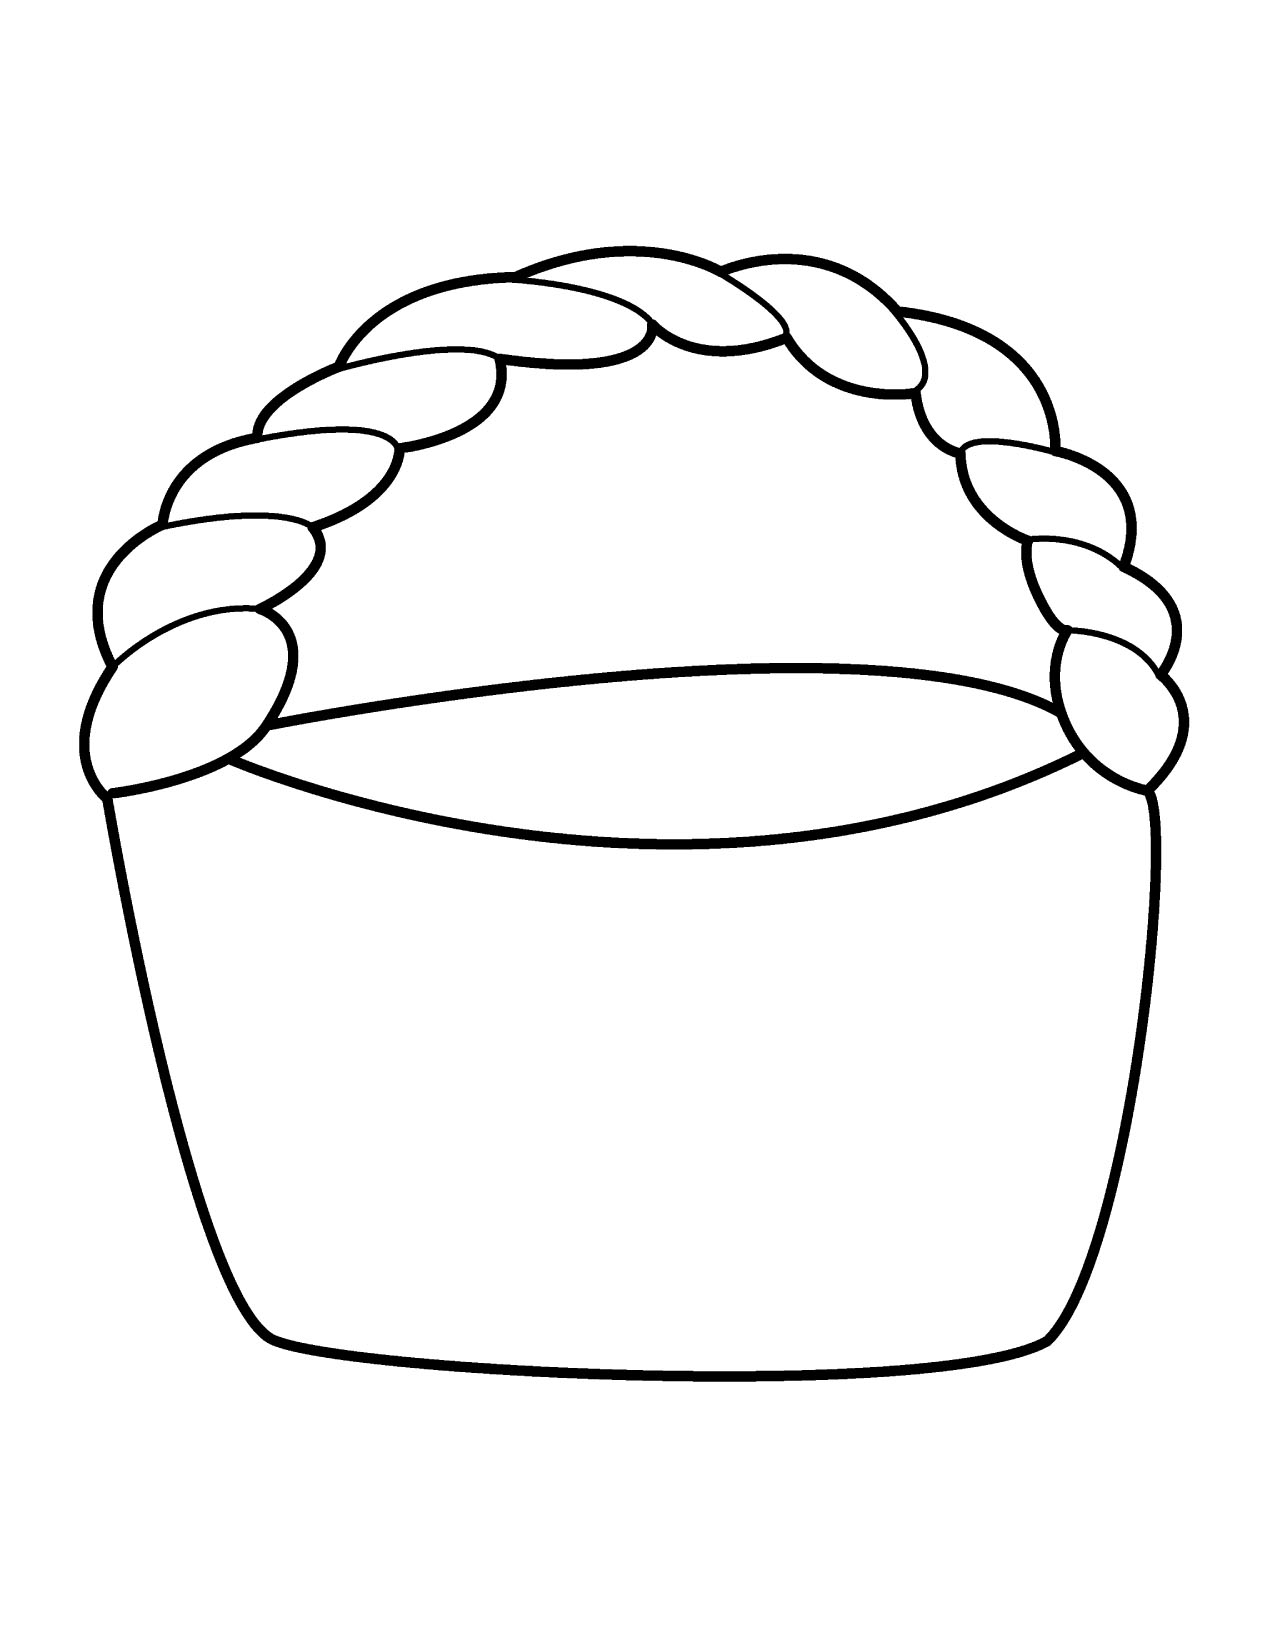 T basket clipart free images 4